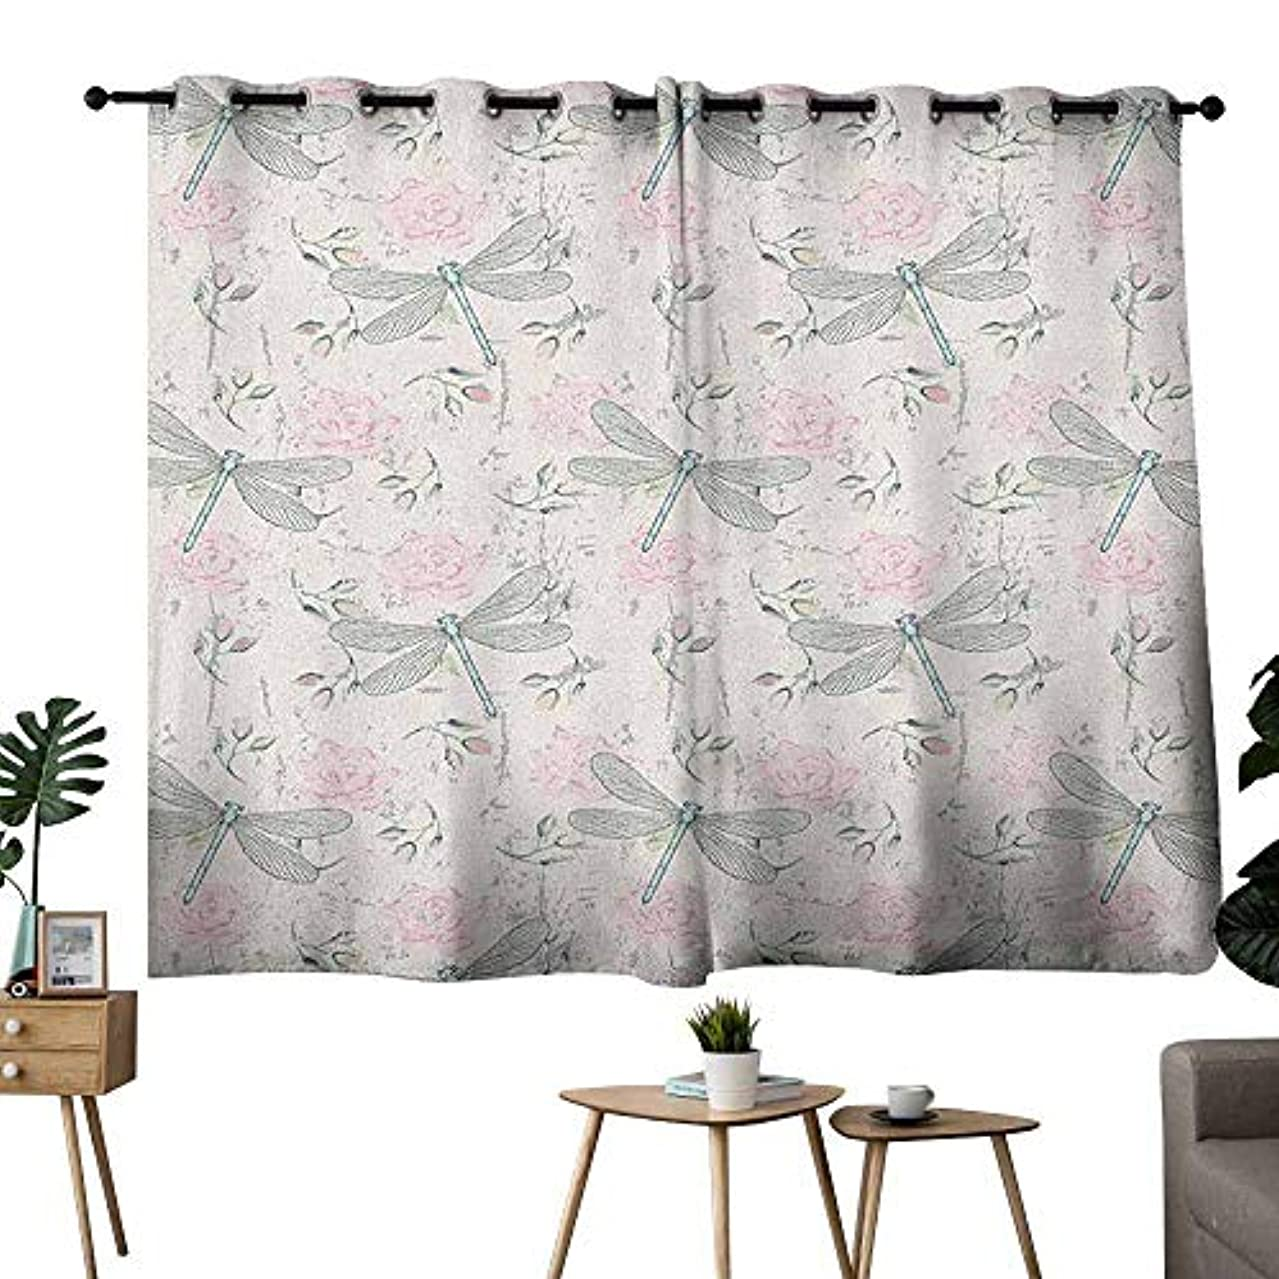 Mannwarehouse Dragonfly Thermal Curtains Shabby Chic Roses Worn Old Vintage Backdrop with Moth Bugs Print Privacy Protection 55